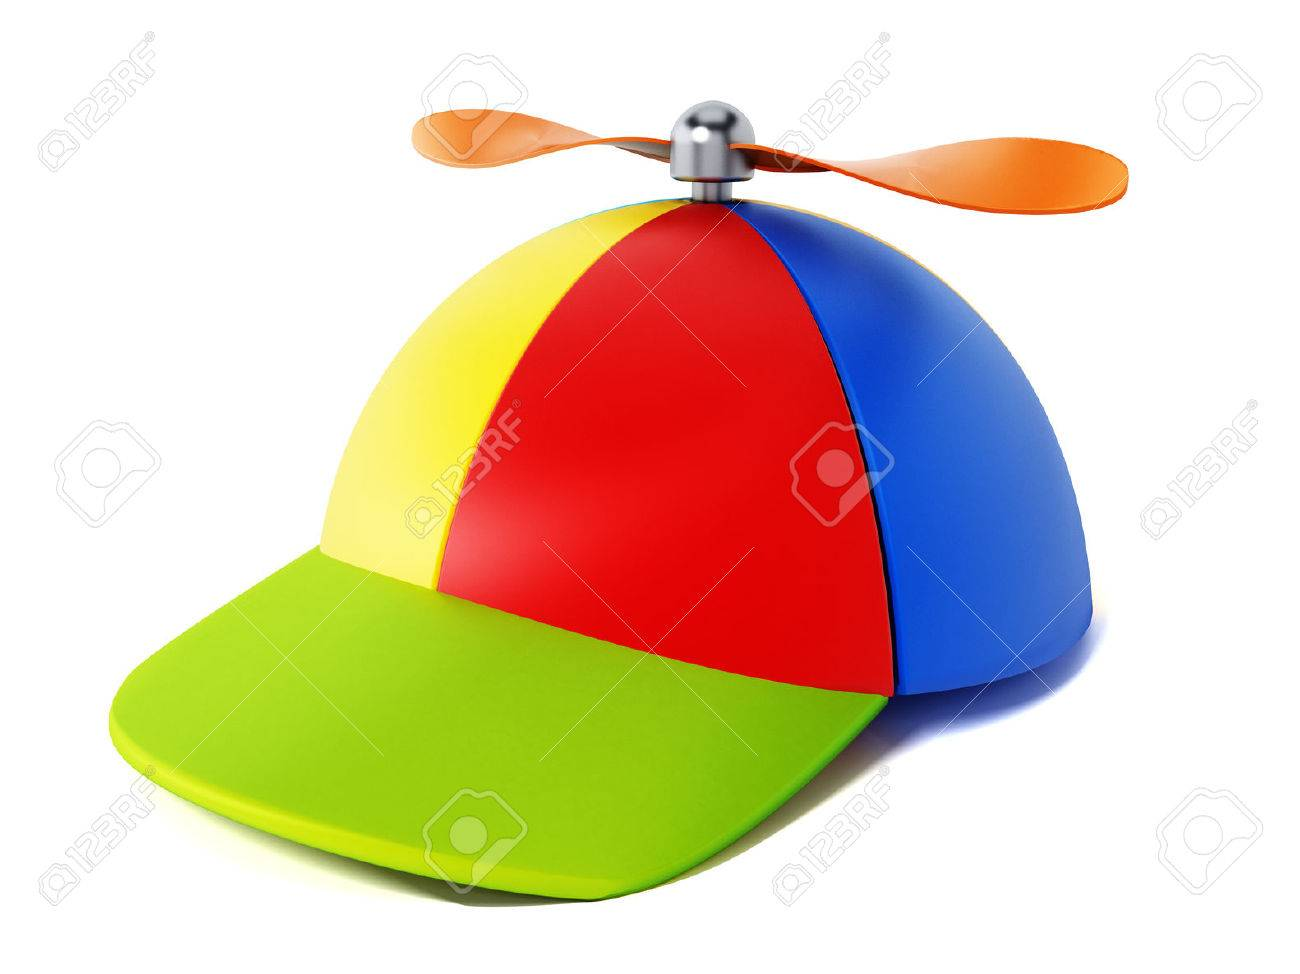 4105e60b90fc3 Illustration - Multi colored hat with propeller isolated on white  background. 3D illustration.